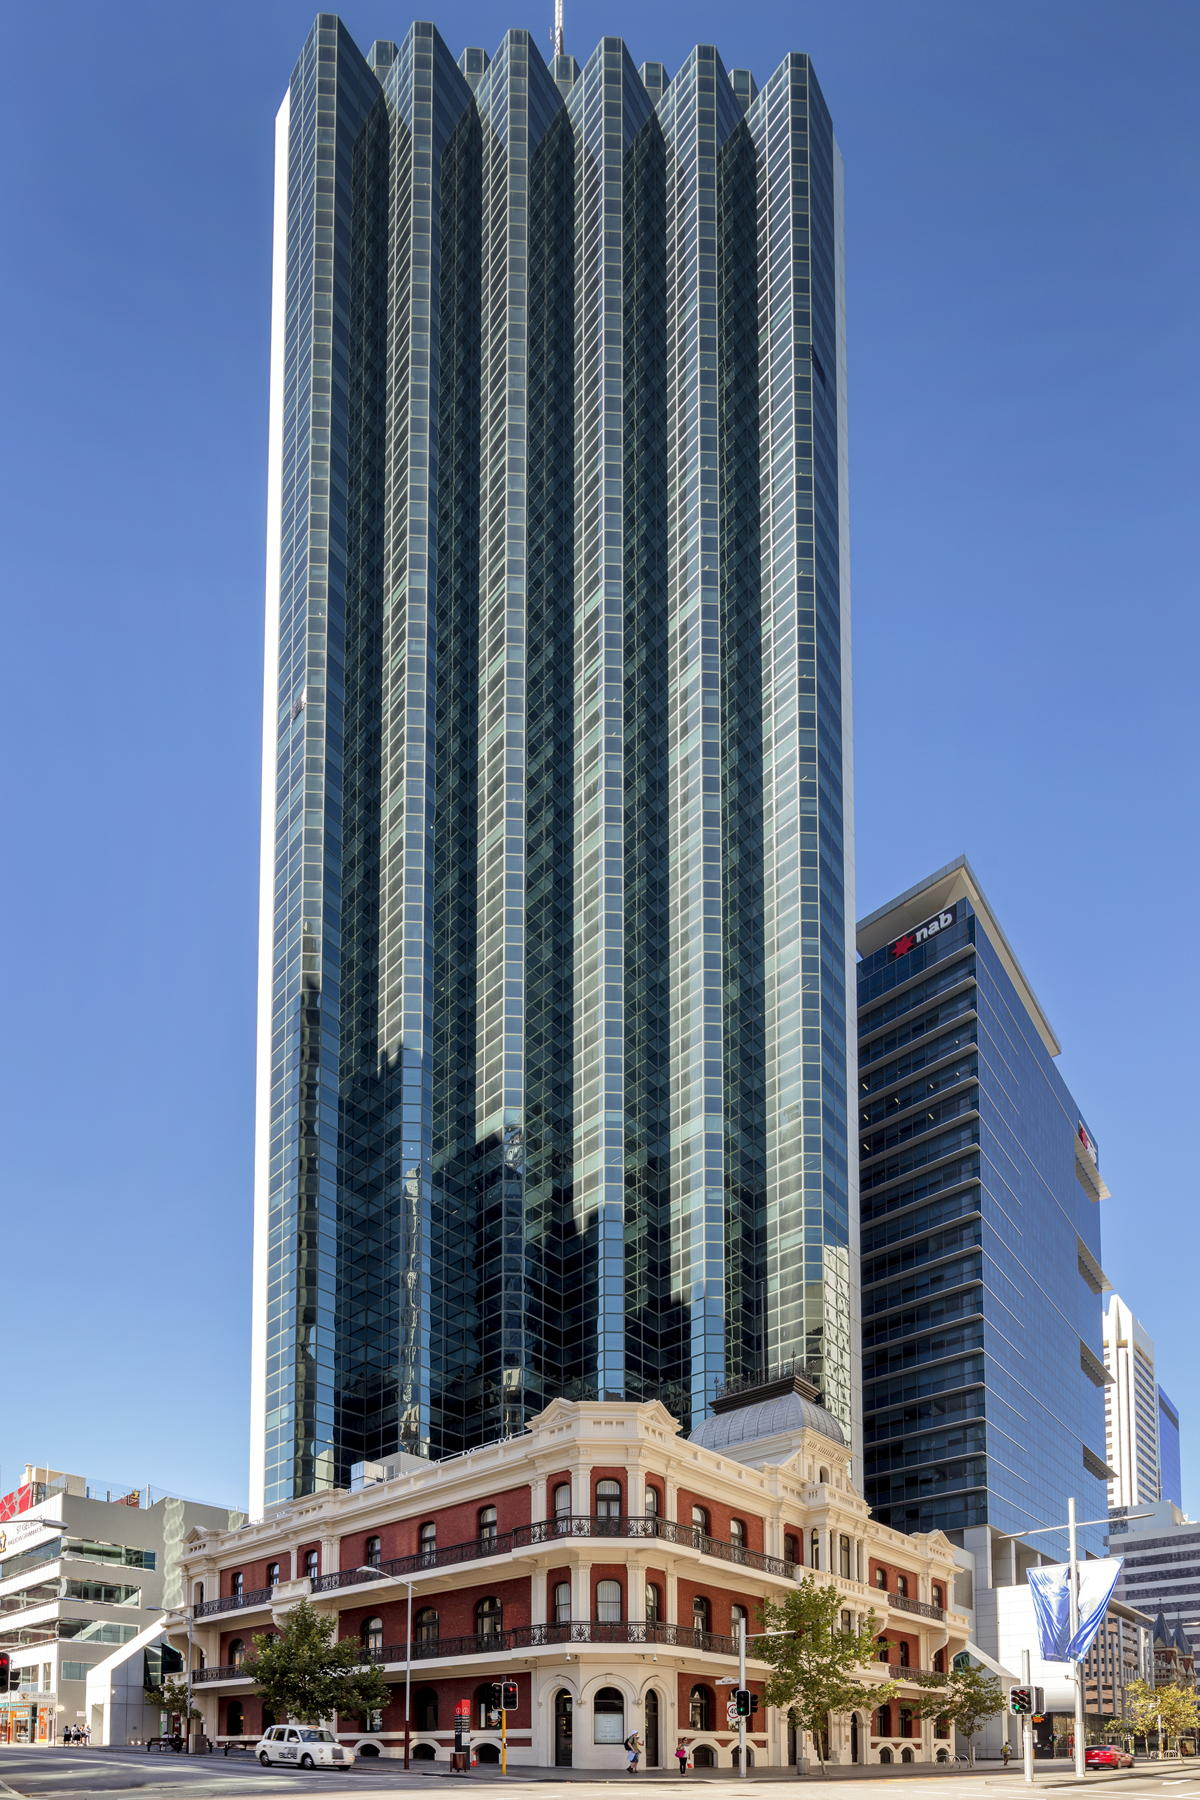 GMA Garnet has relocated its main office in Perth to the distinctive 108 St Georges Terrace tower.